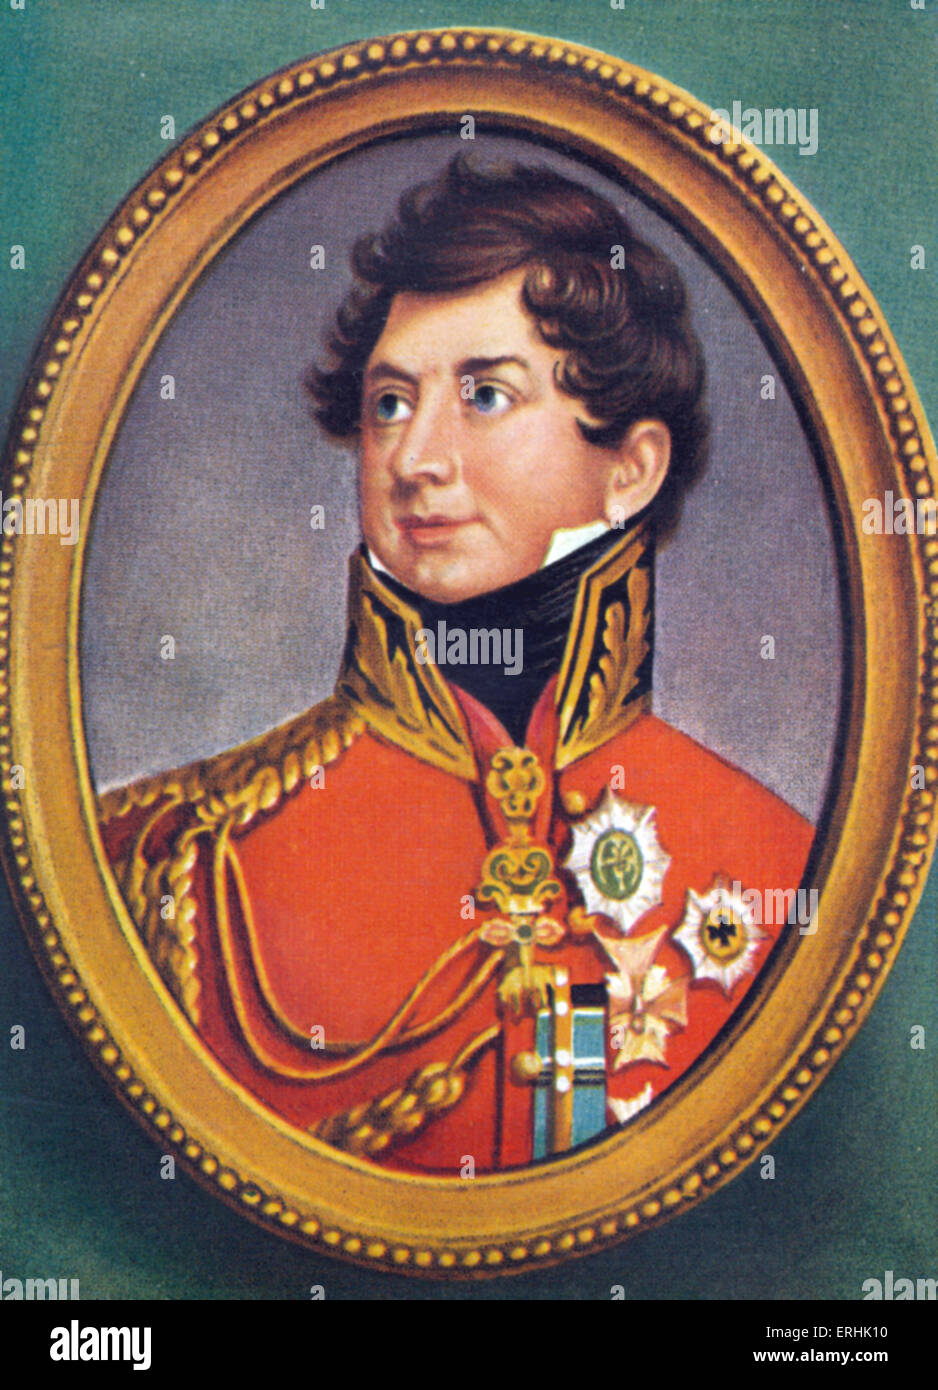 George IV (George Augustus Frederick). Portrait of the King of the United Kingdom of Great Britain and Ireland. - Stock Image